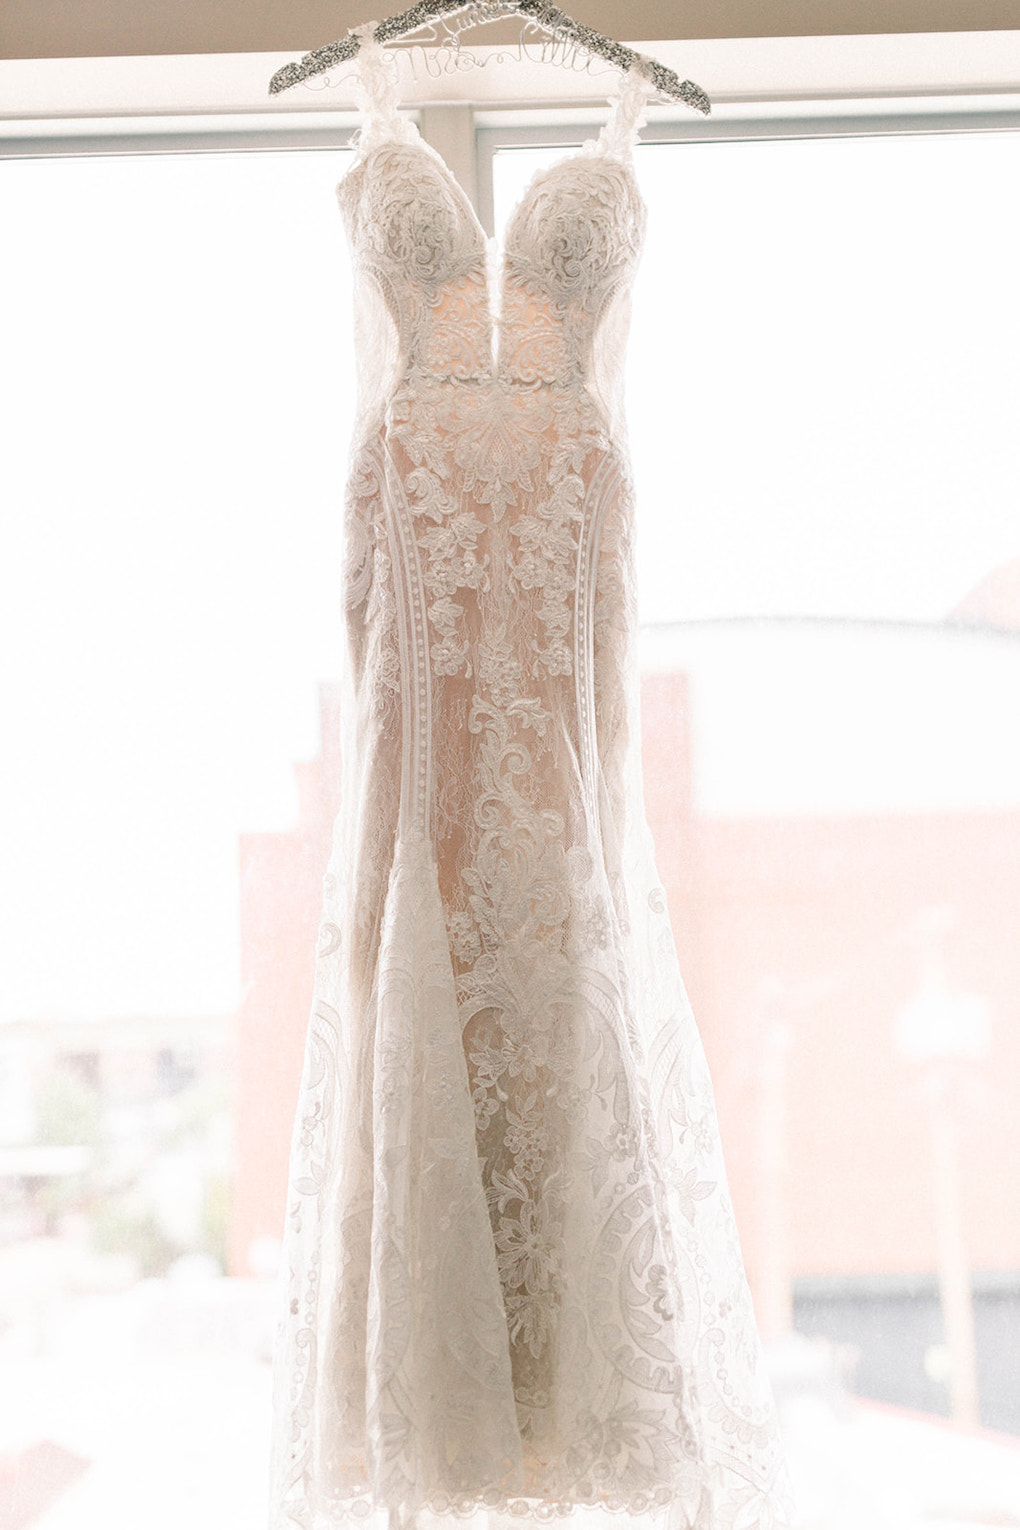 Fit and Flare wedding dress: Pittsburgh Botanic Garden wedding planned by Exhale Events. See more wedding inspiration at exhale-events.com!